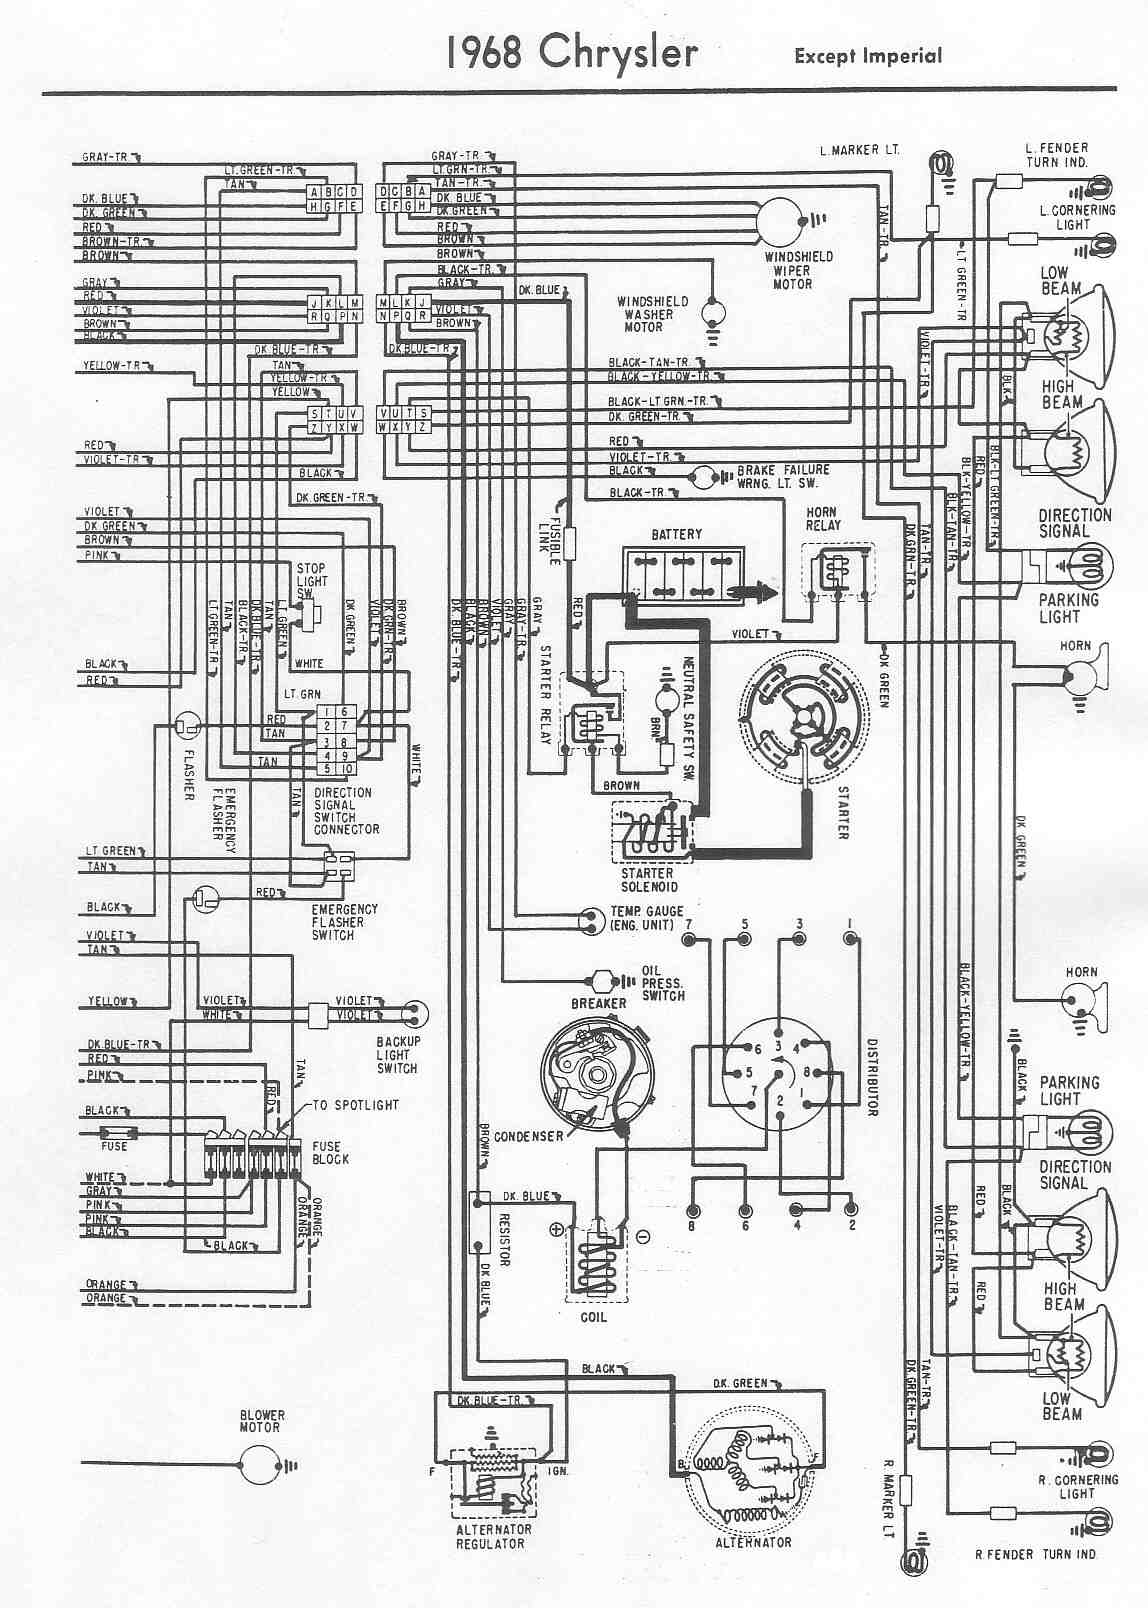 hight resolution of chrysler car manuals wiring diagrams pdf fault codes 1955 imperial 1951 chrysler new yorker